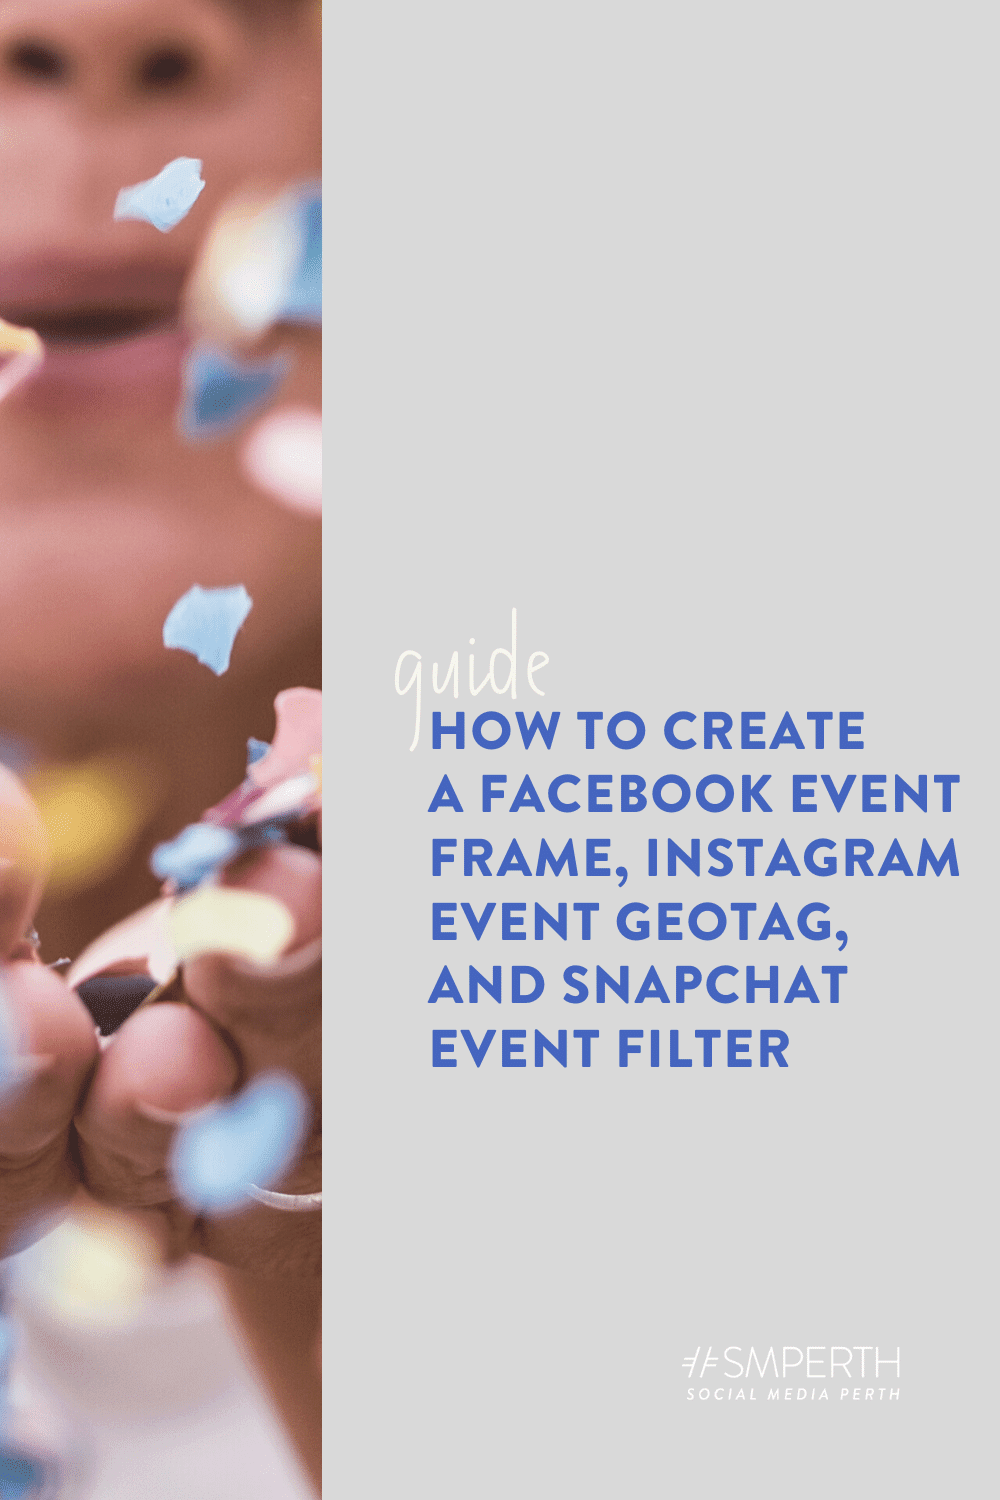 How to Create a Facebook Event Frame, Instagram Event Geotag, and Snapchat Event Filter